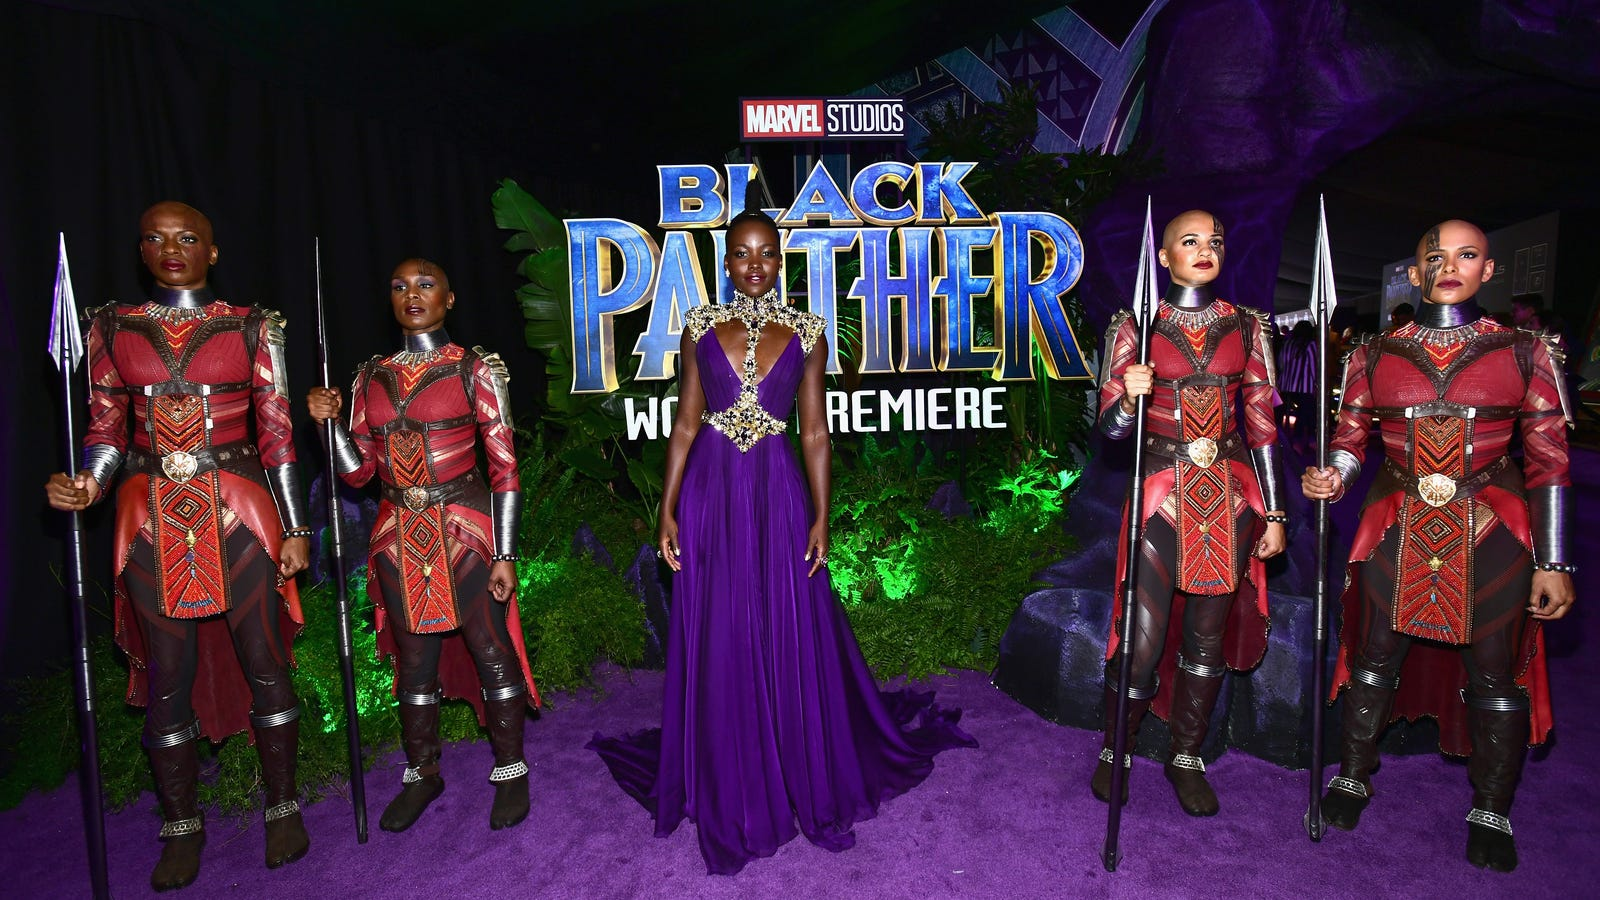 The Blackest Red Carpet Ever Black Panther Premiered Last